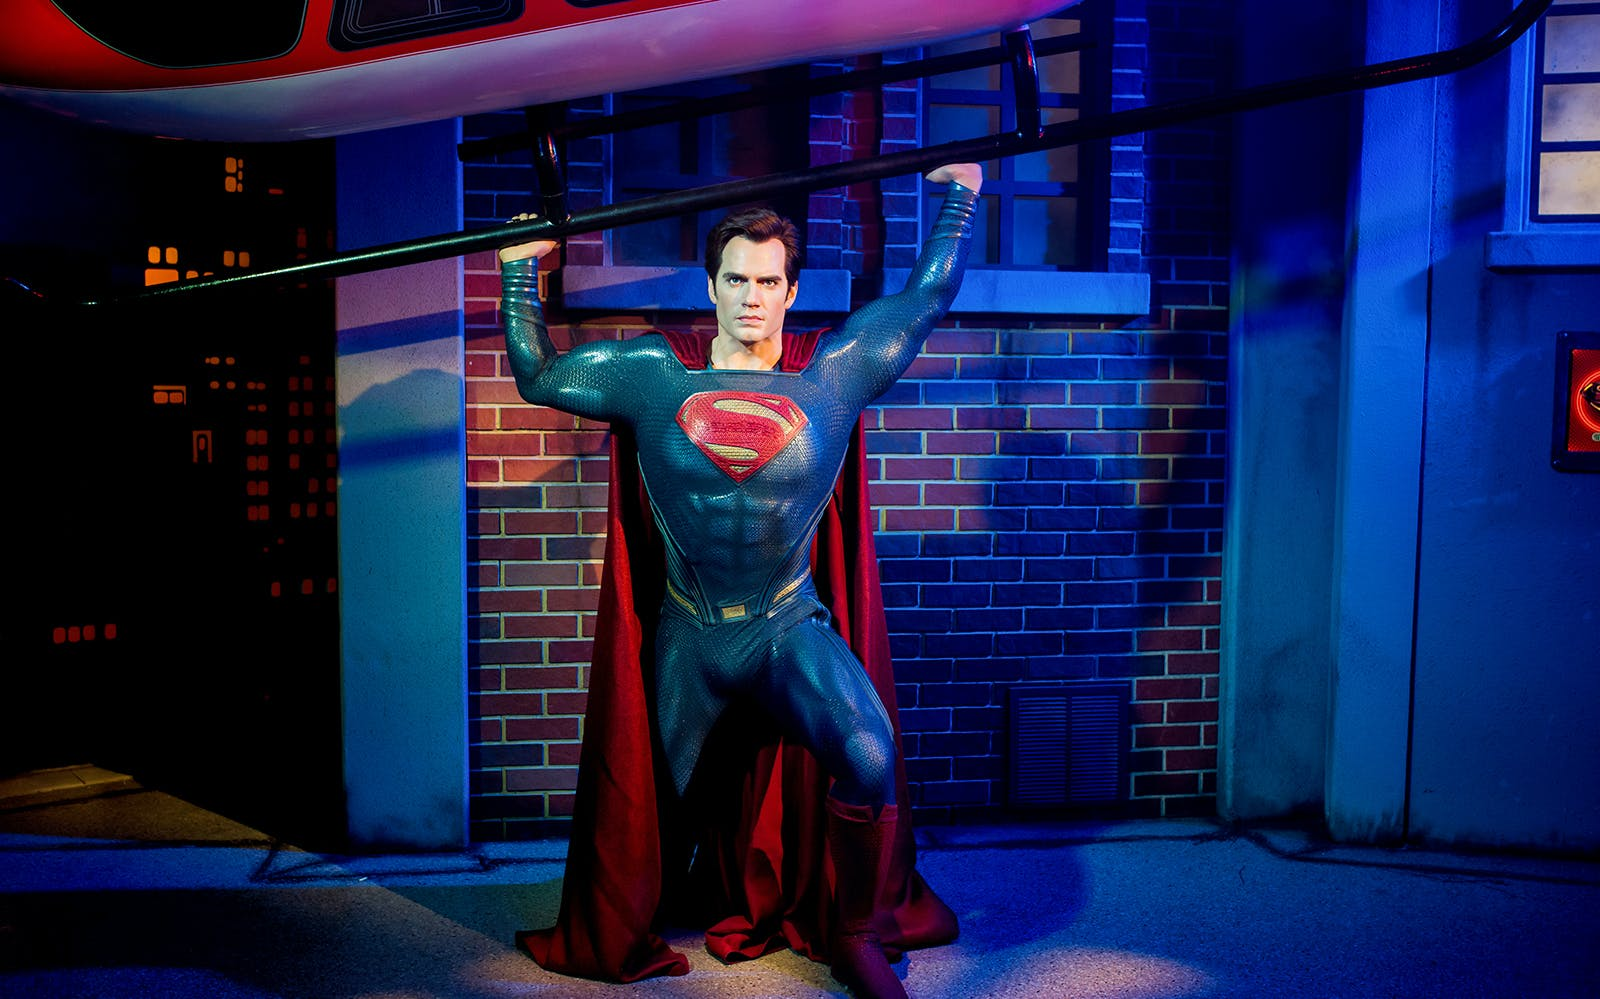 skip the line tickets to madame tussauds sydney-1